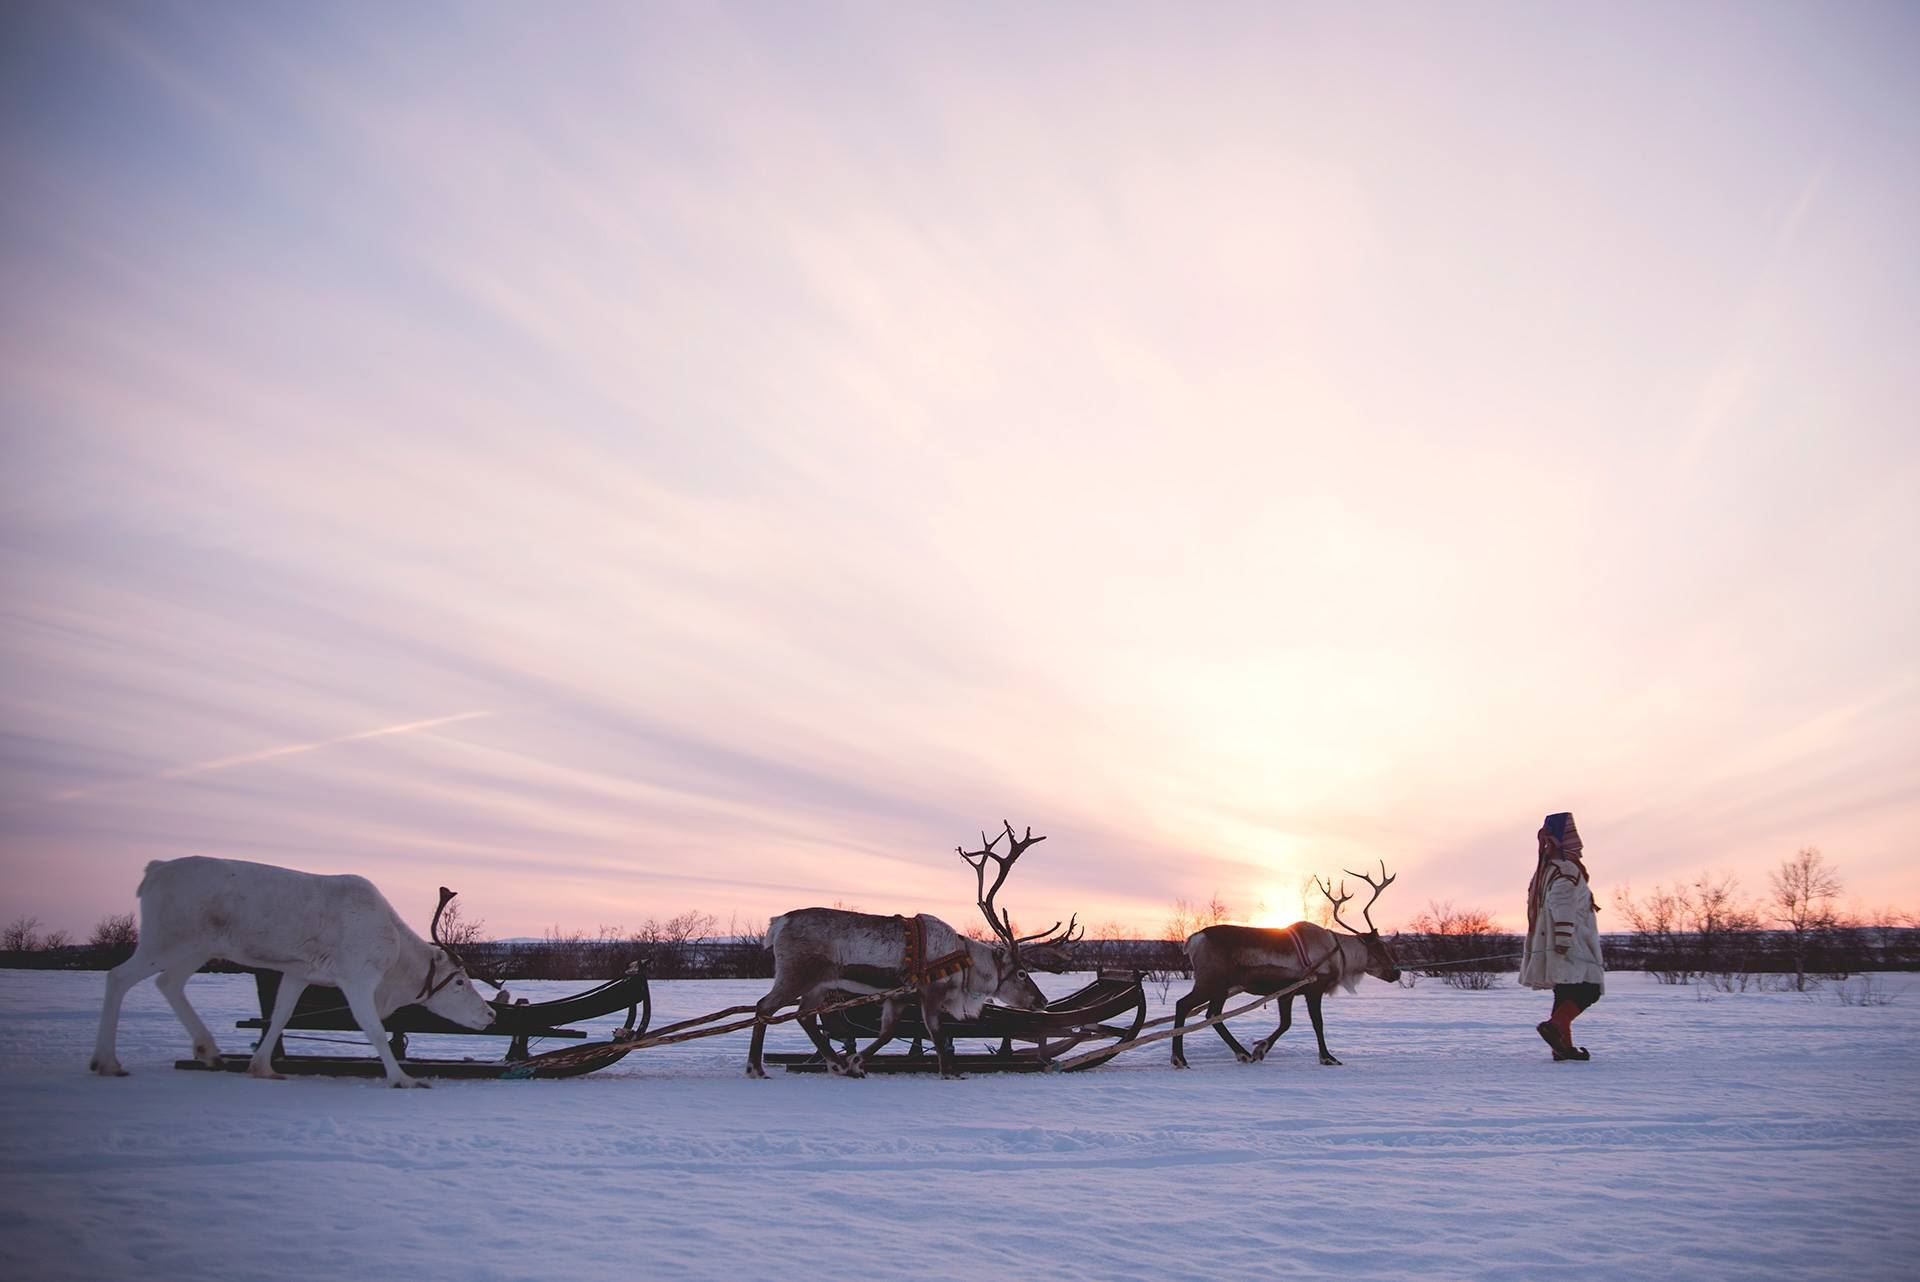 Reindeer Sledding in SamiCamp